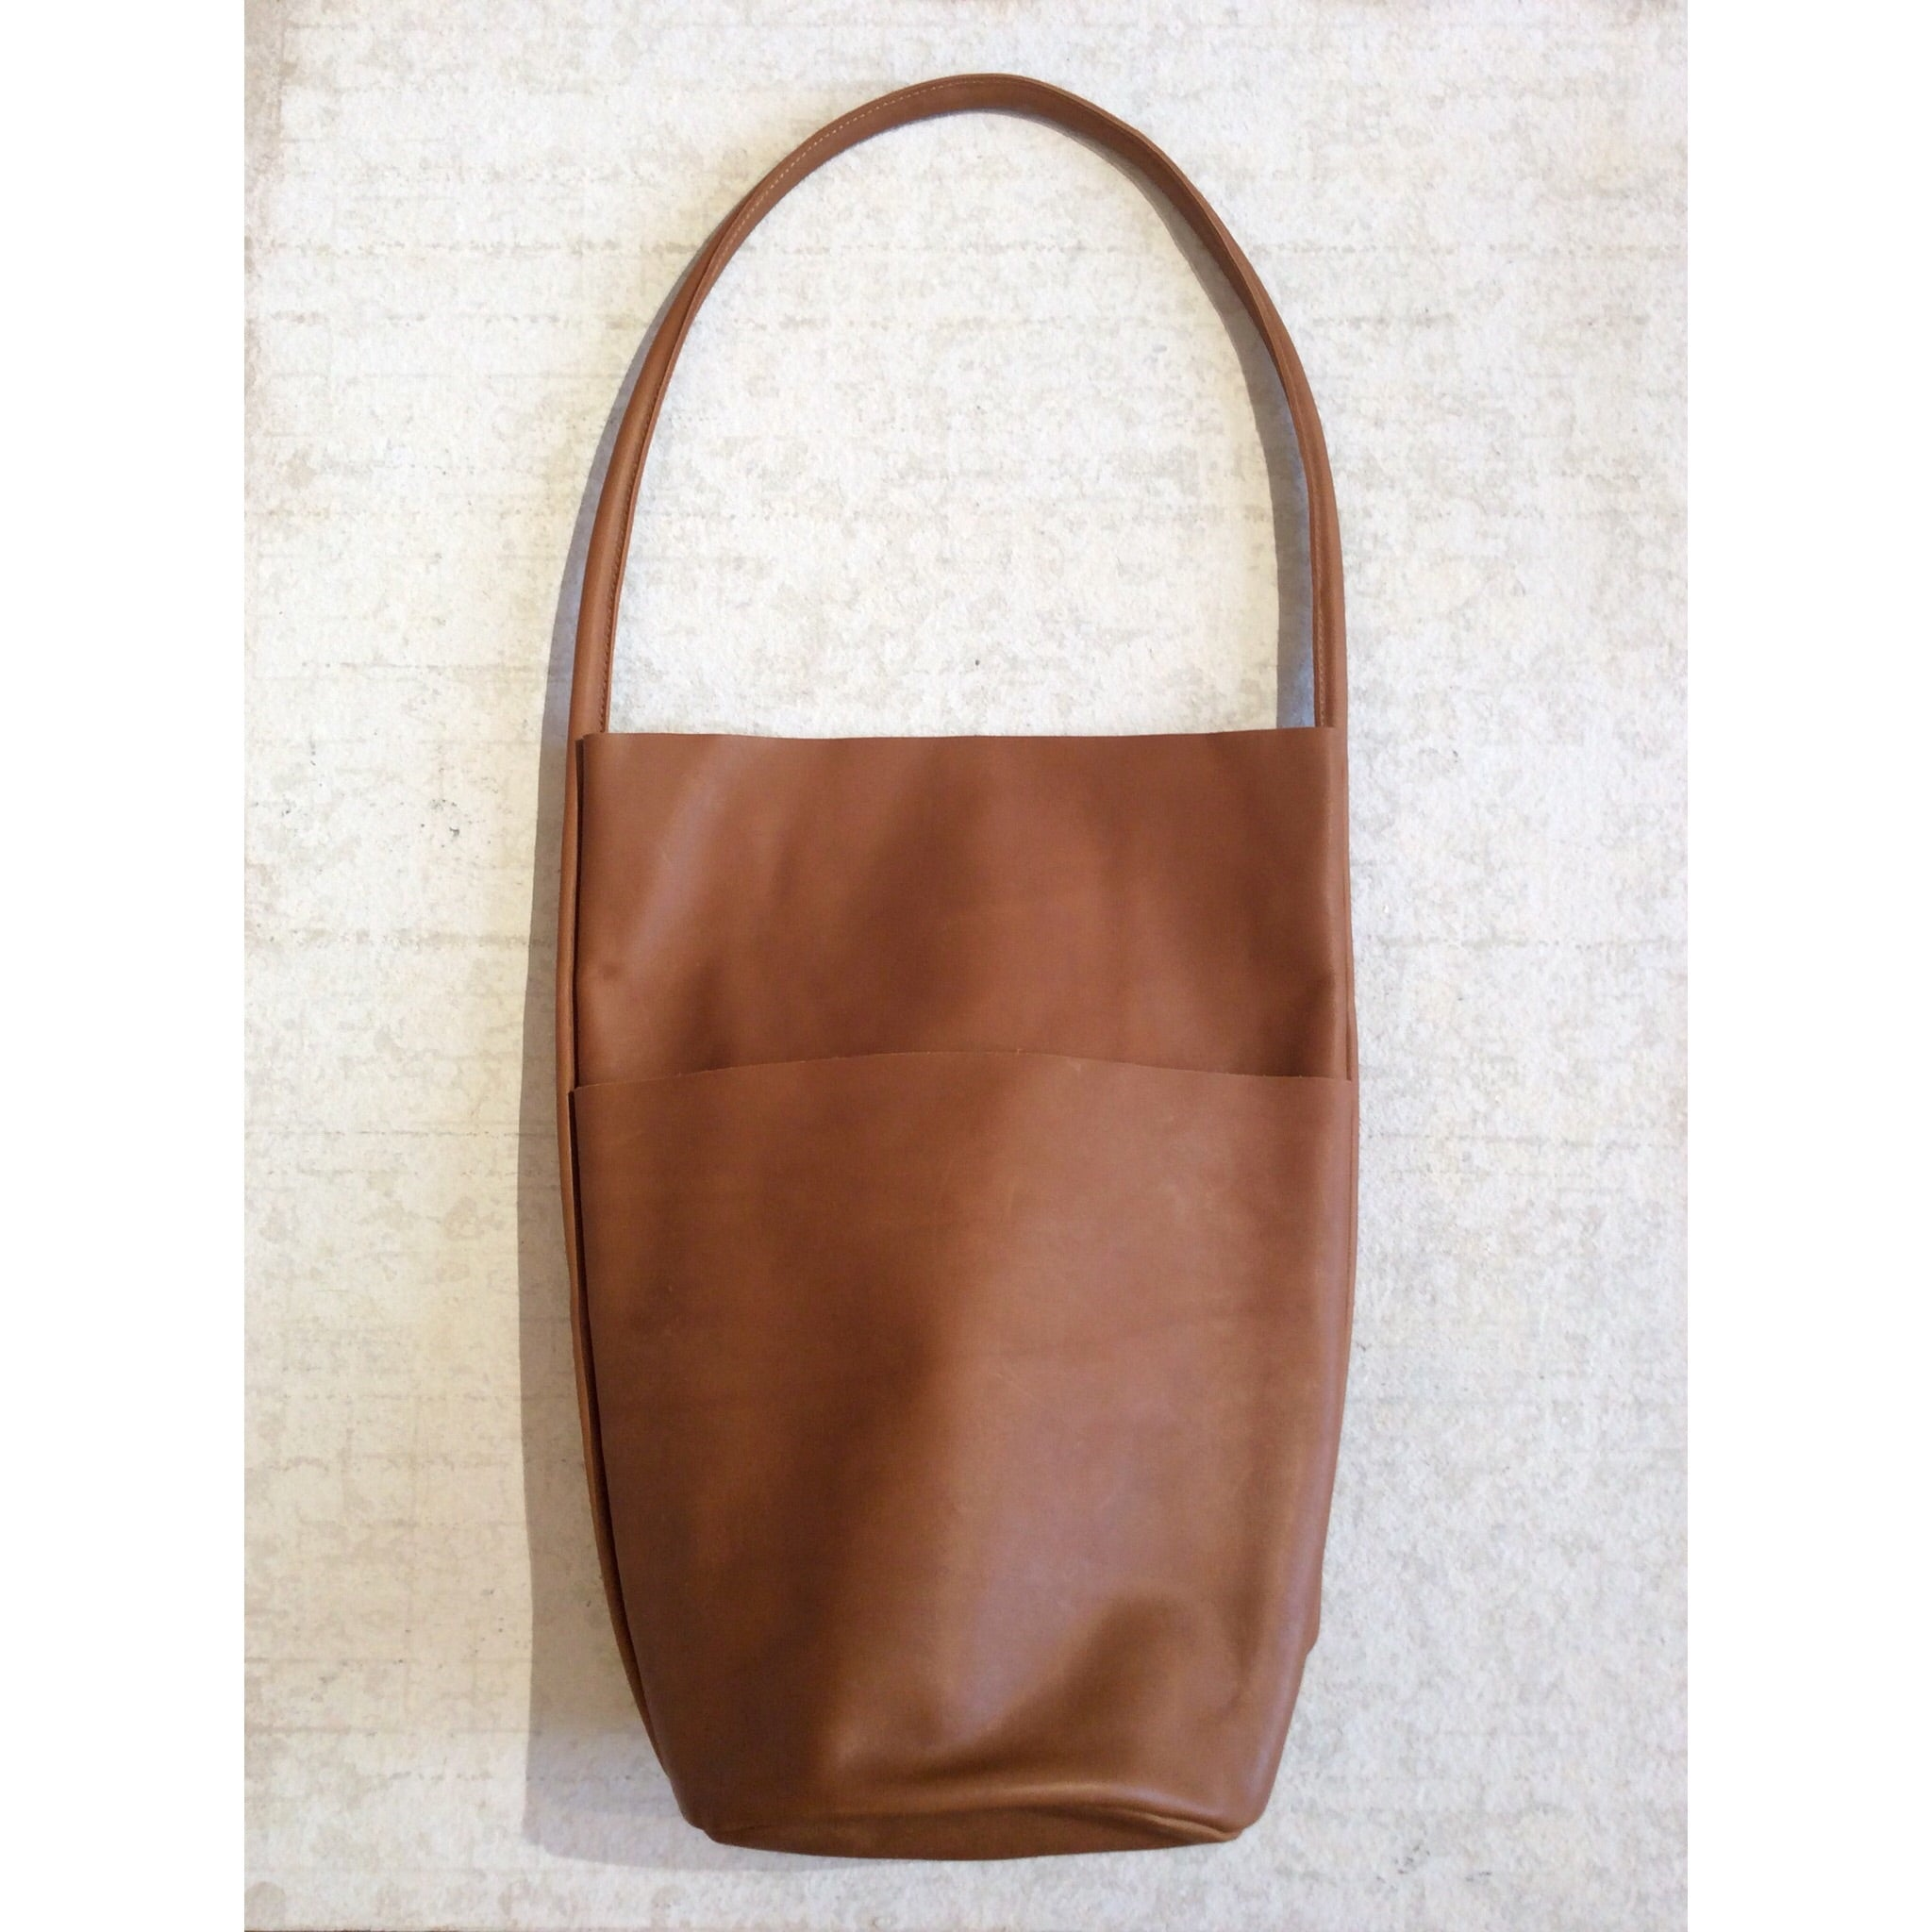 BODY SCULPTURES LEATHER SHOPPERS BAG / BROWN